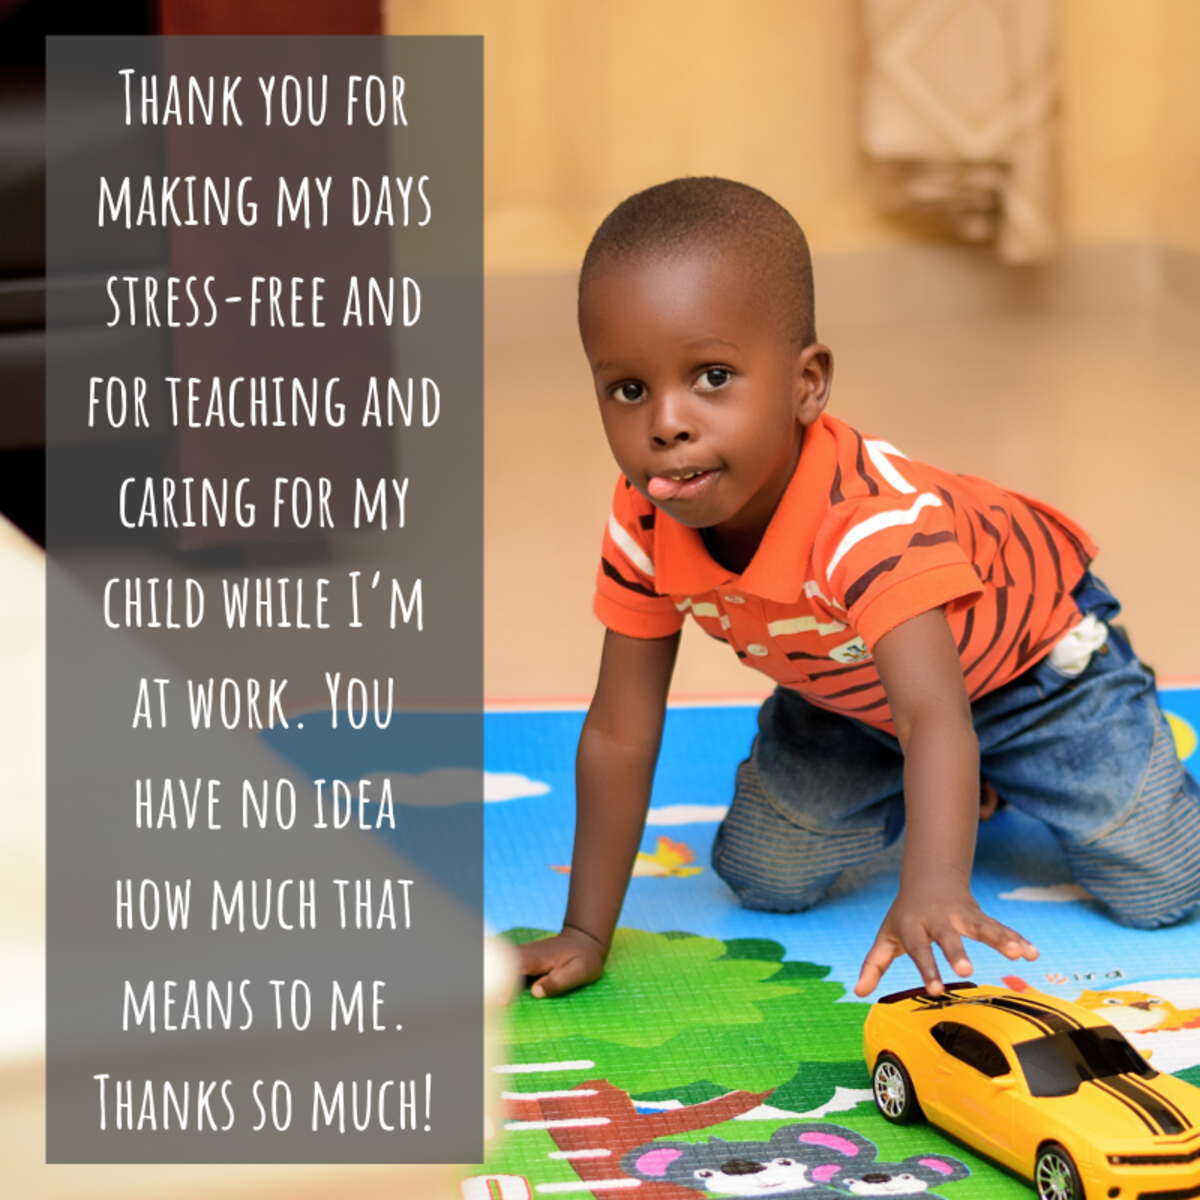 Our children's teachers keep them safe, comfortable, and engaged while we work. Why not let them know how much impact they have on our lives?